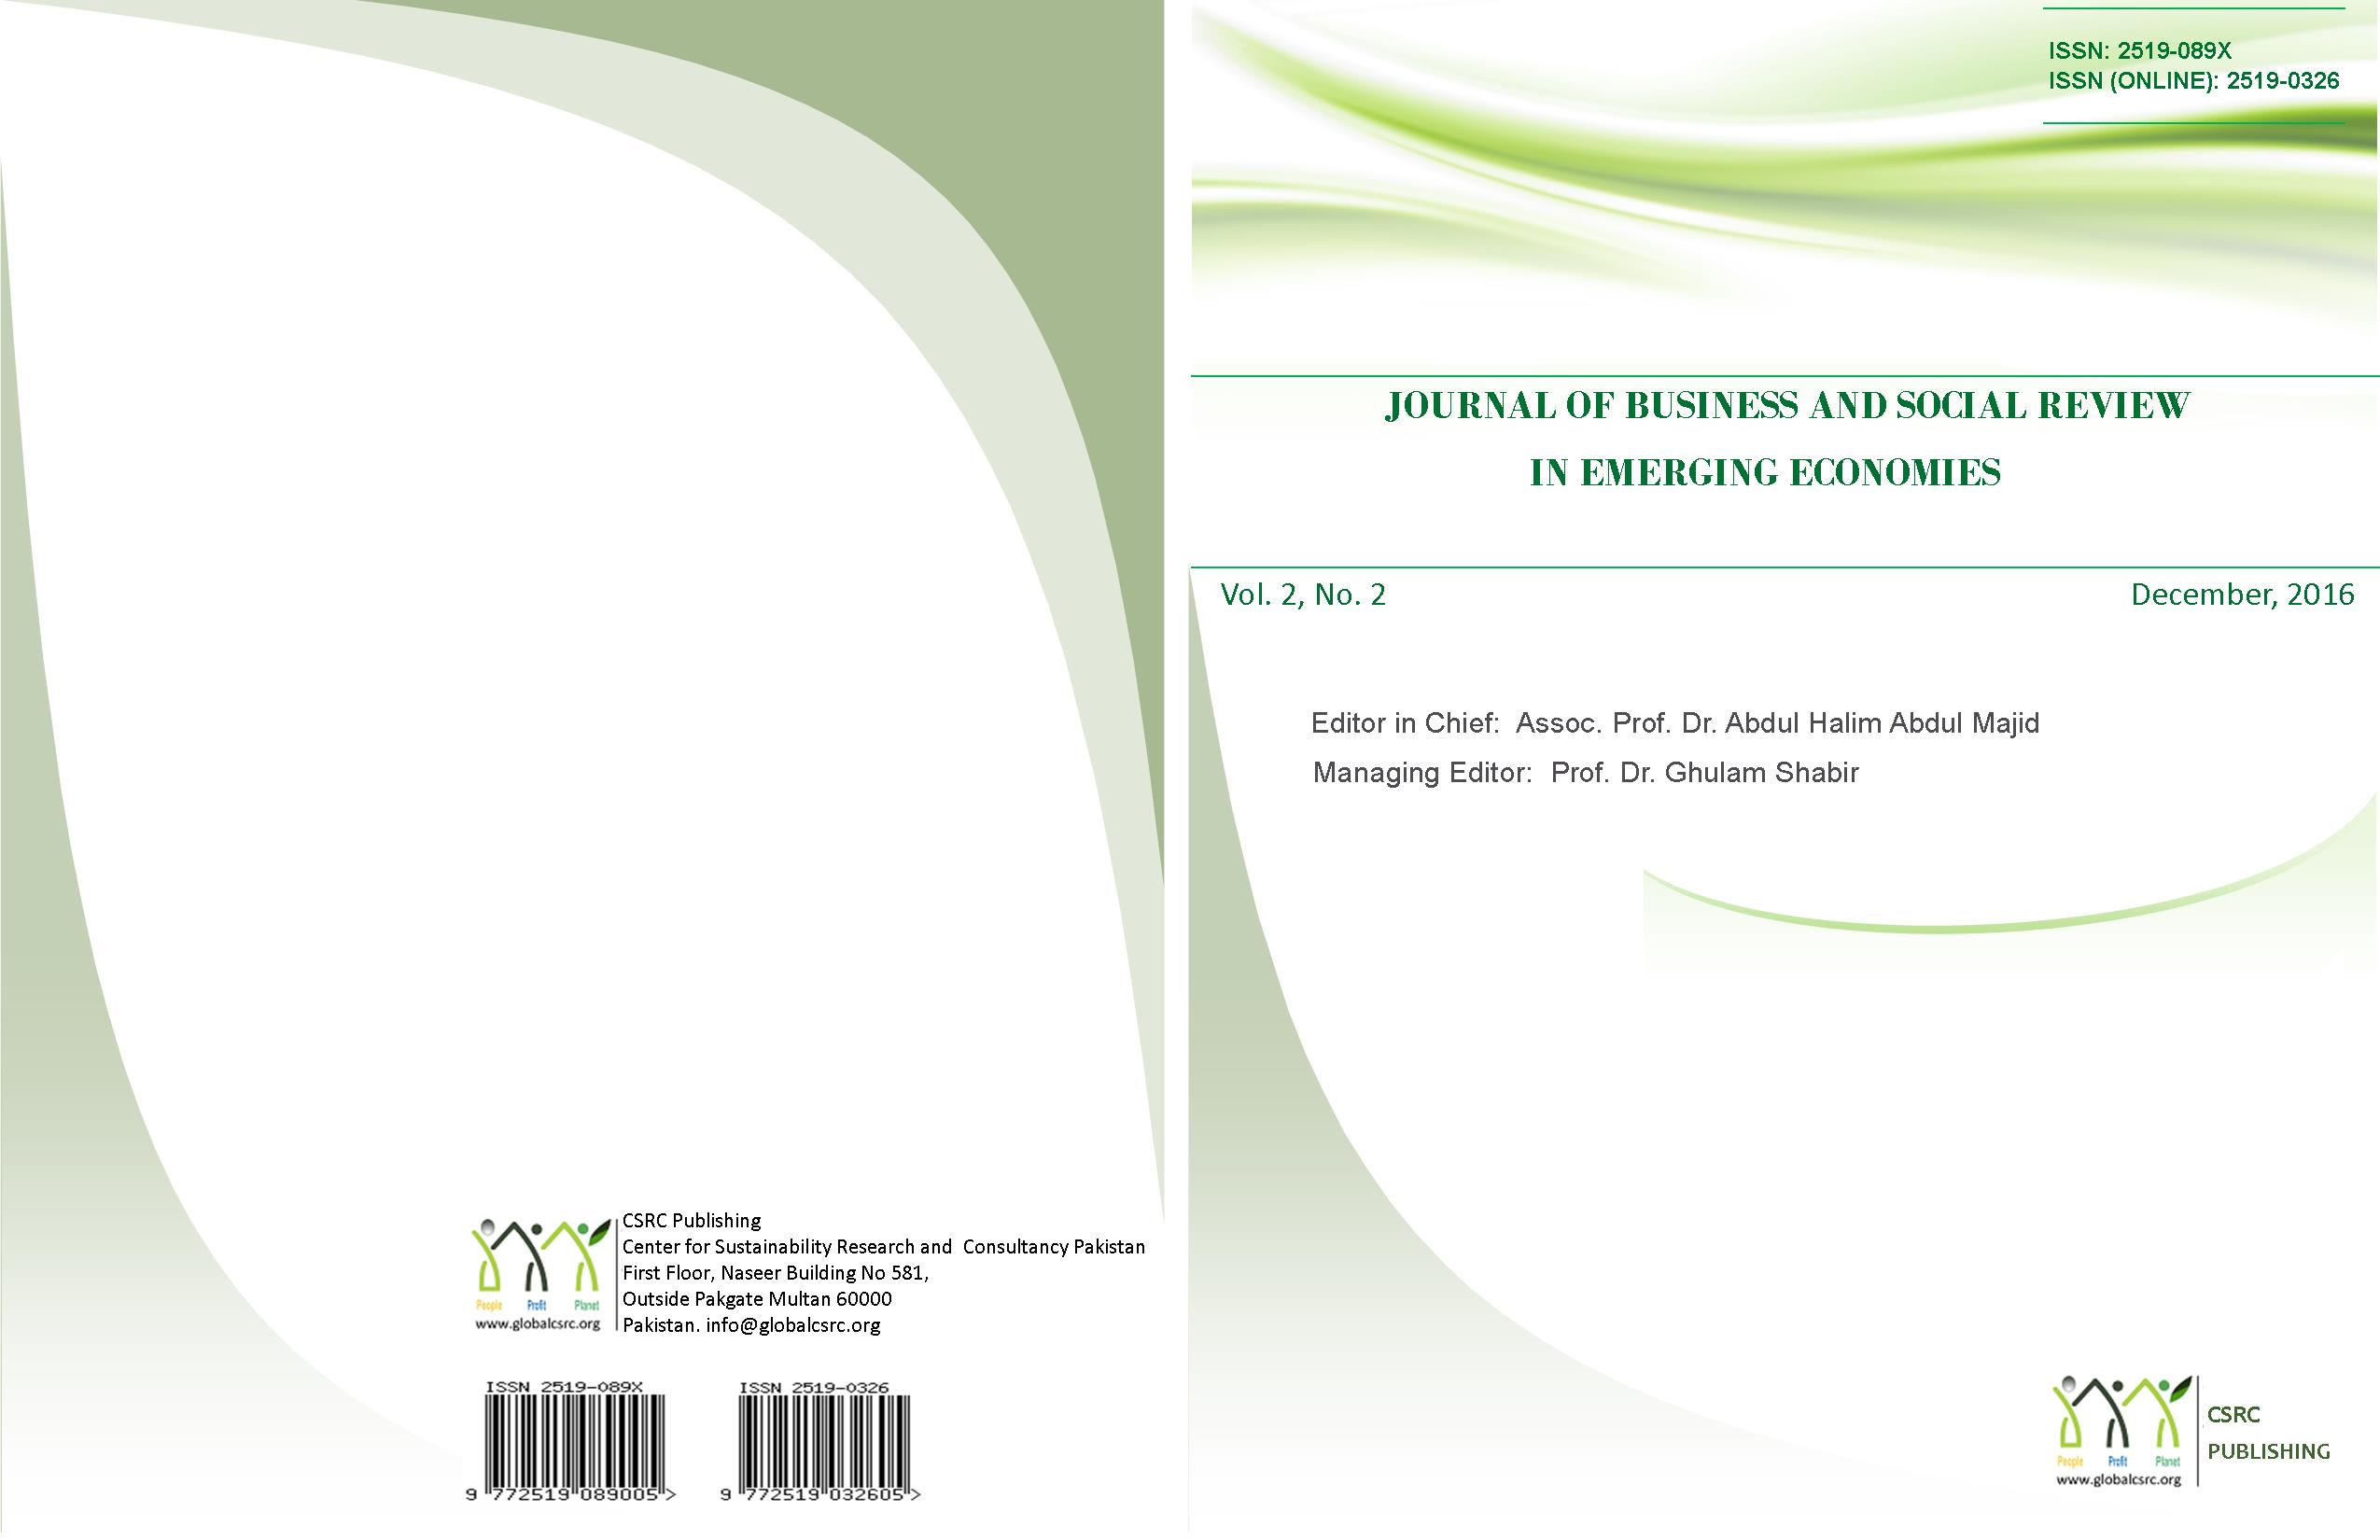 Journal of Business and Social Review in Emerging Economies, Vol 2, No. 2, December 2016